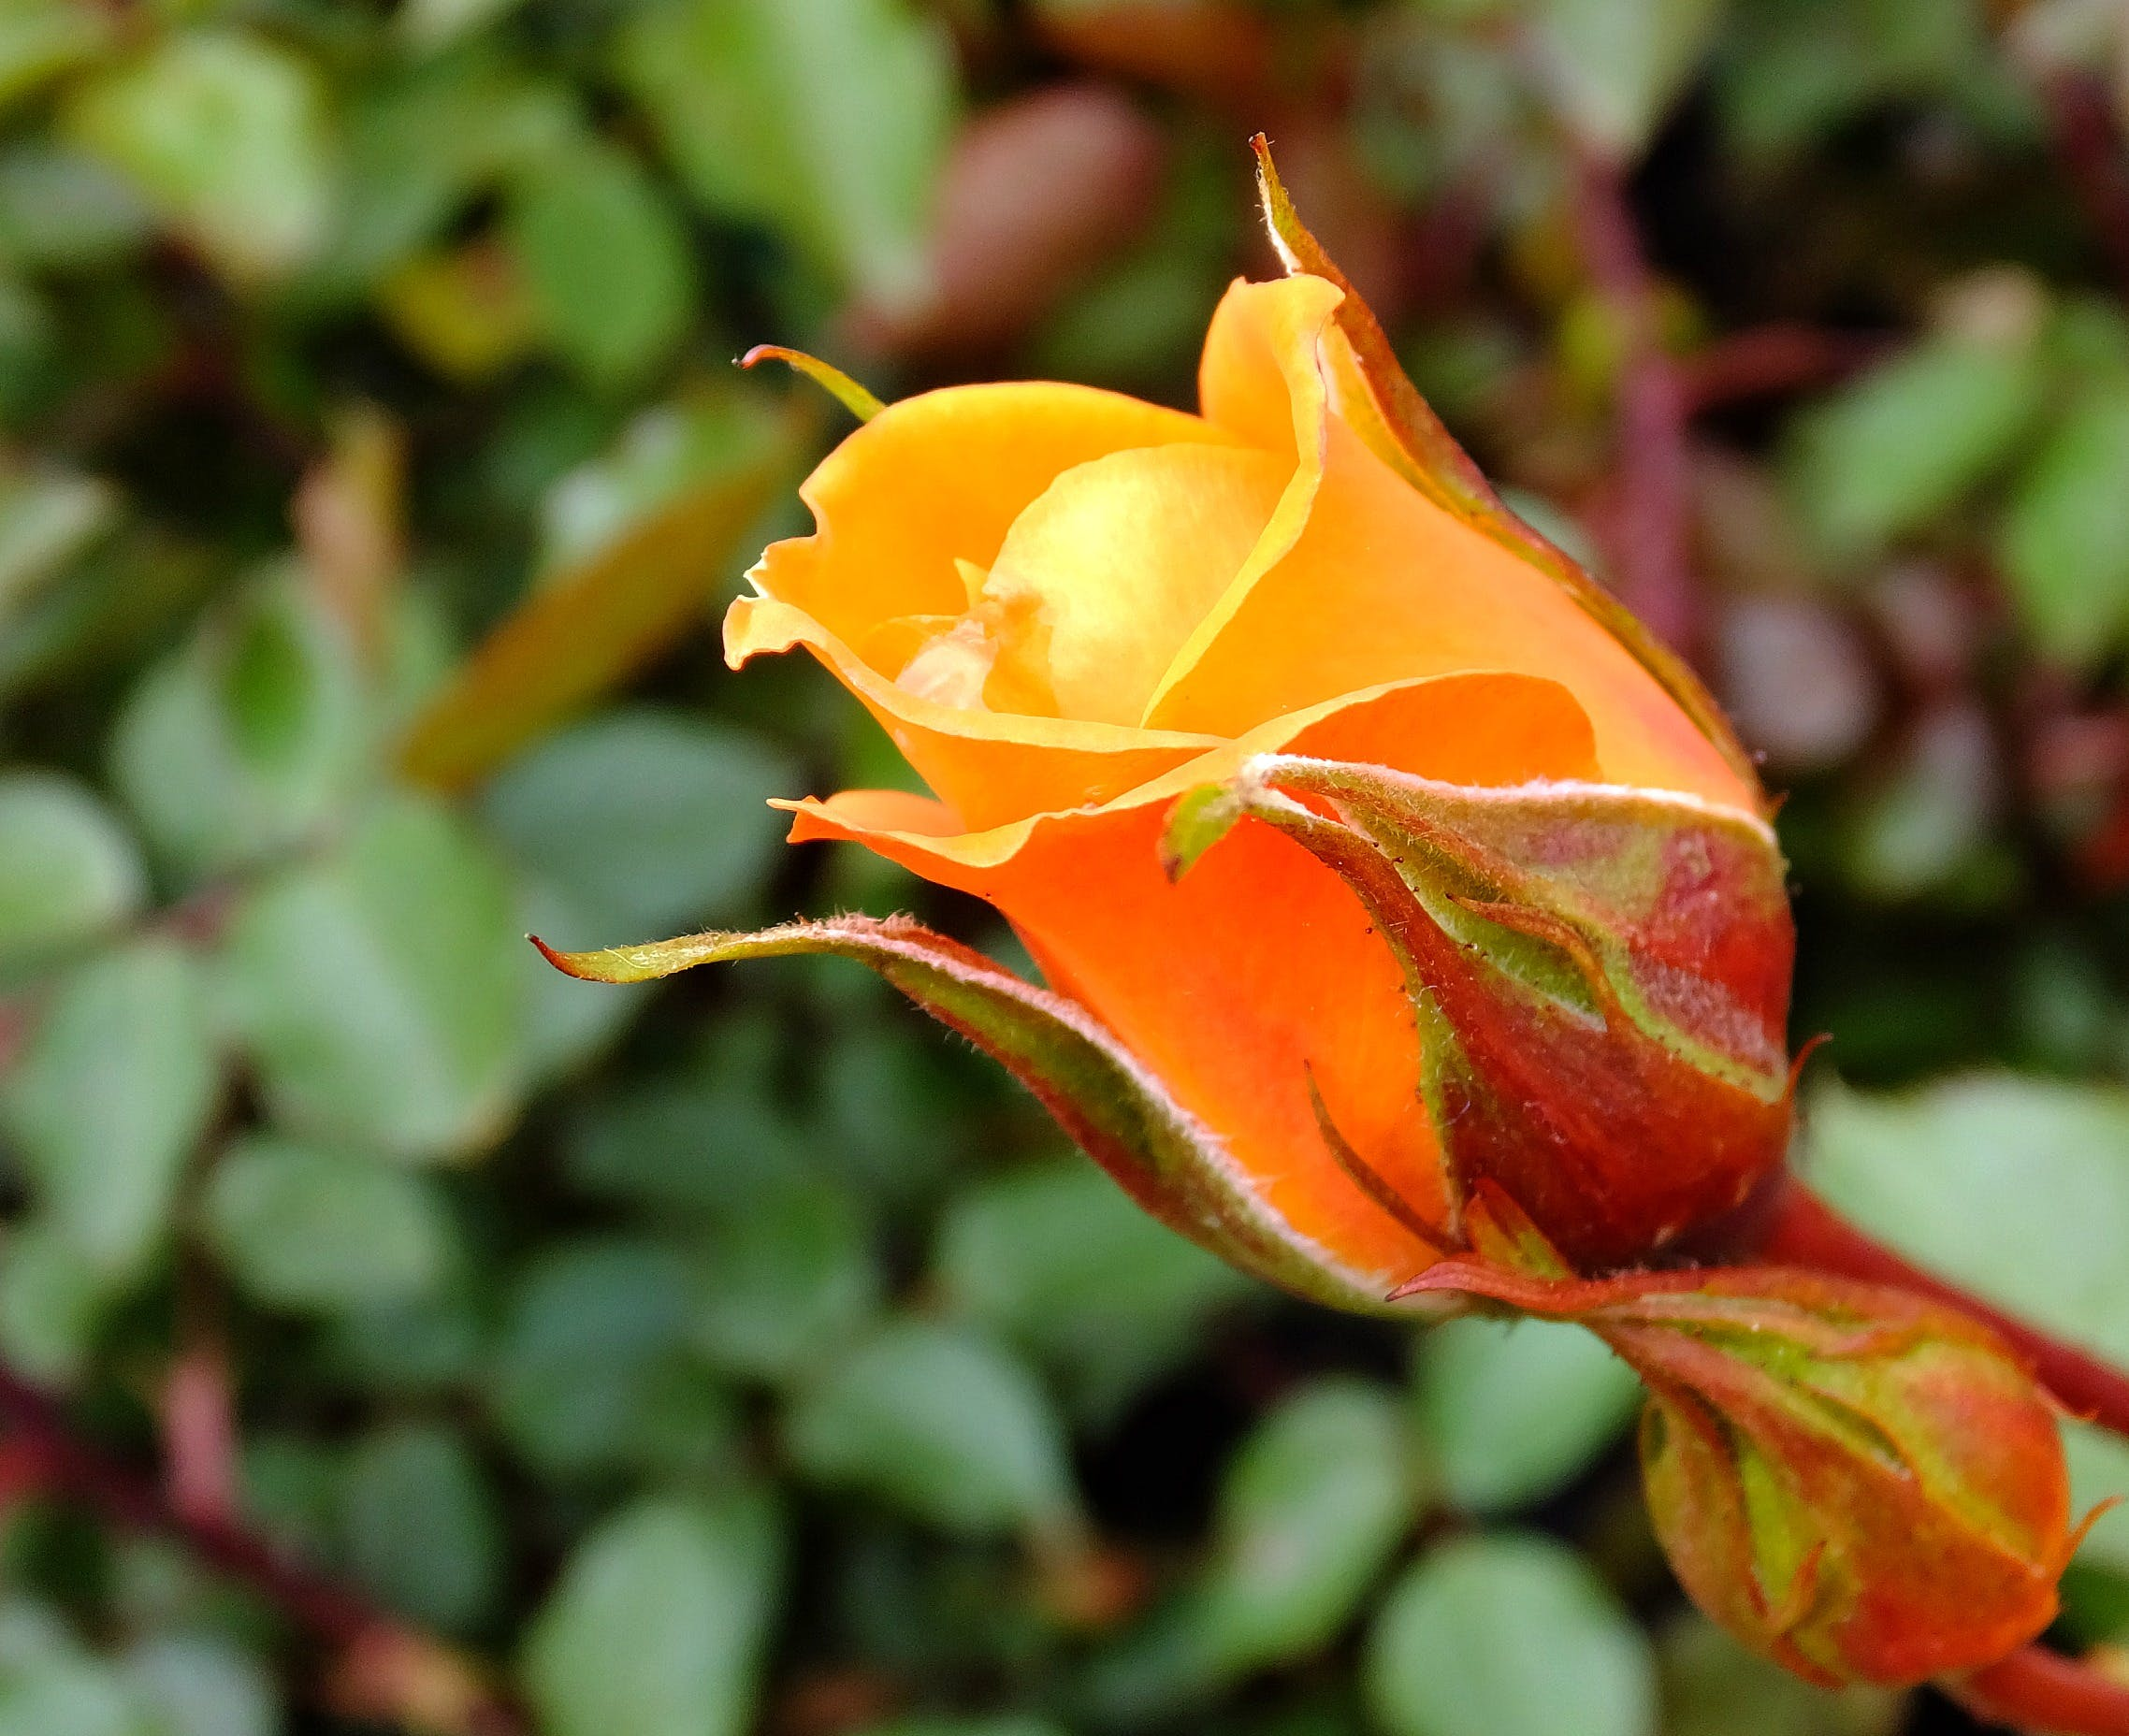 Orange Rose Bud Close-up Photography